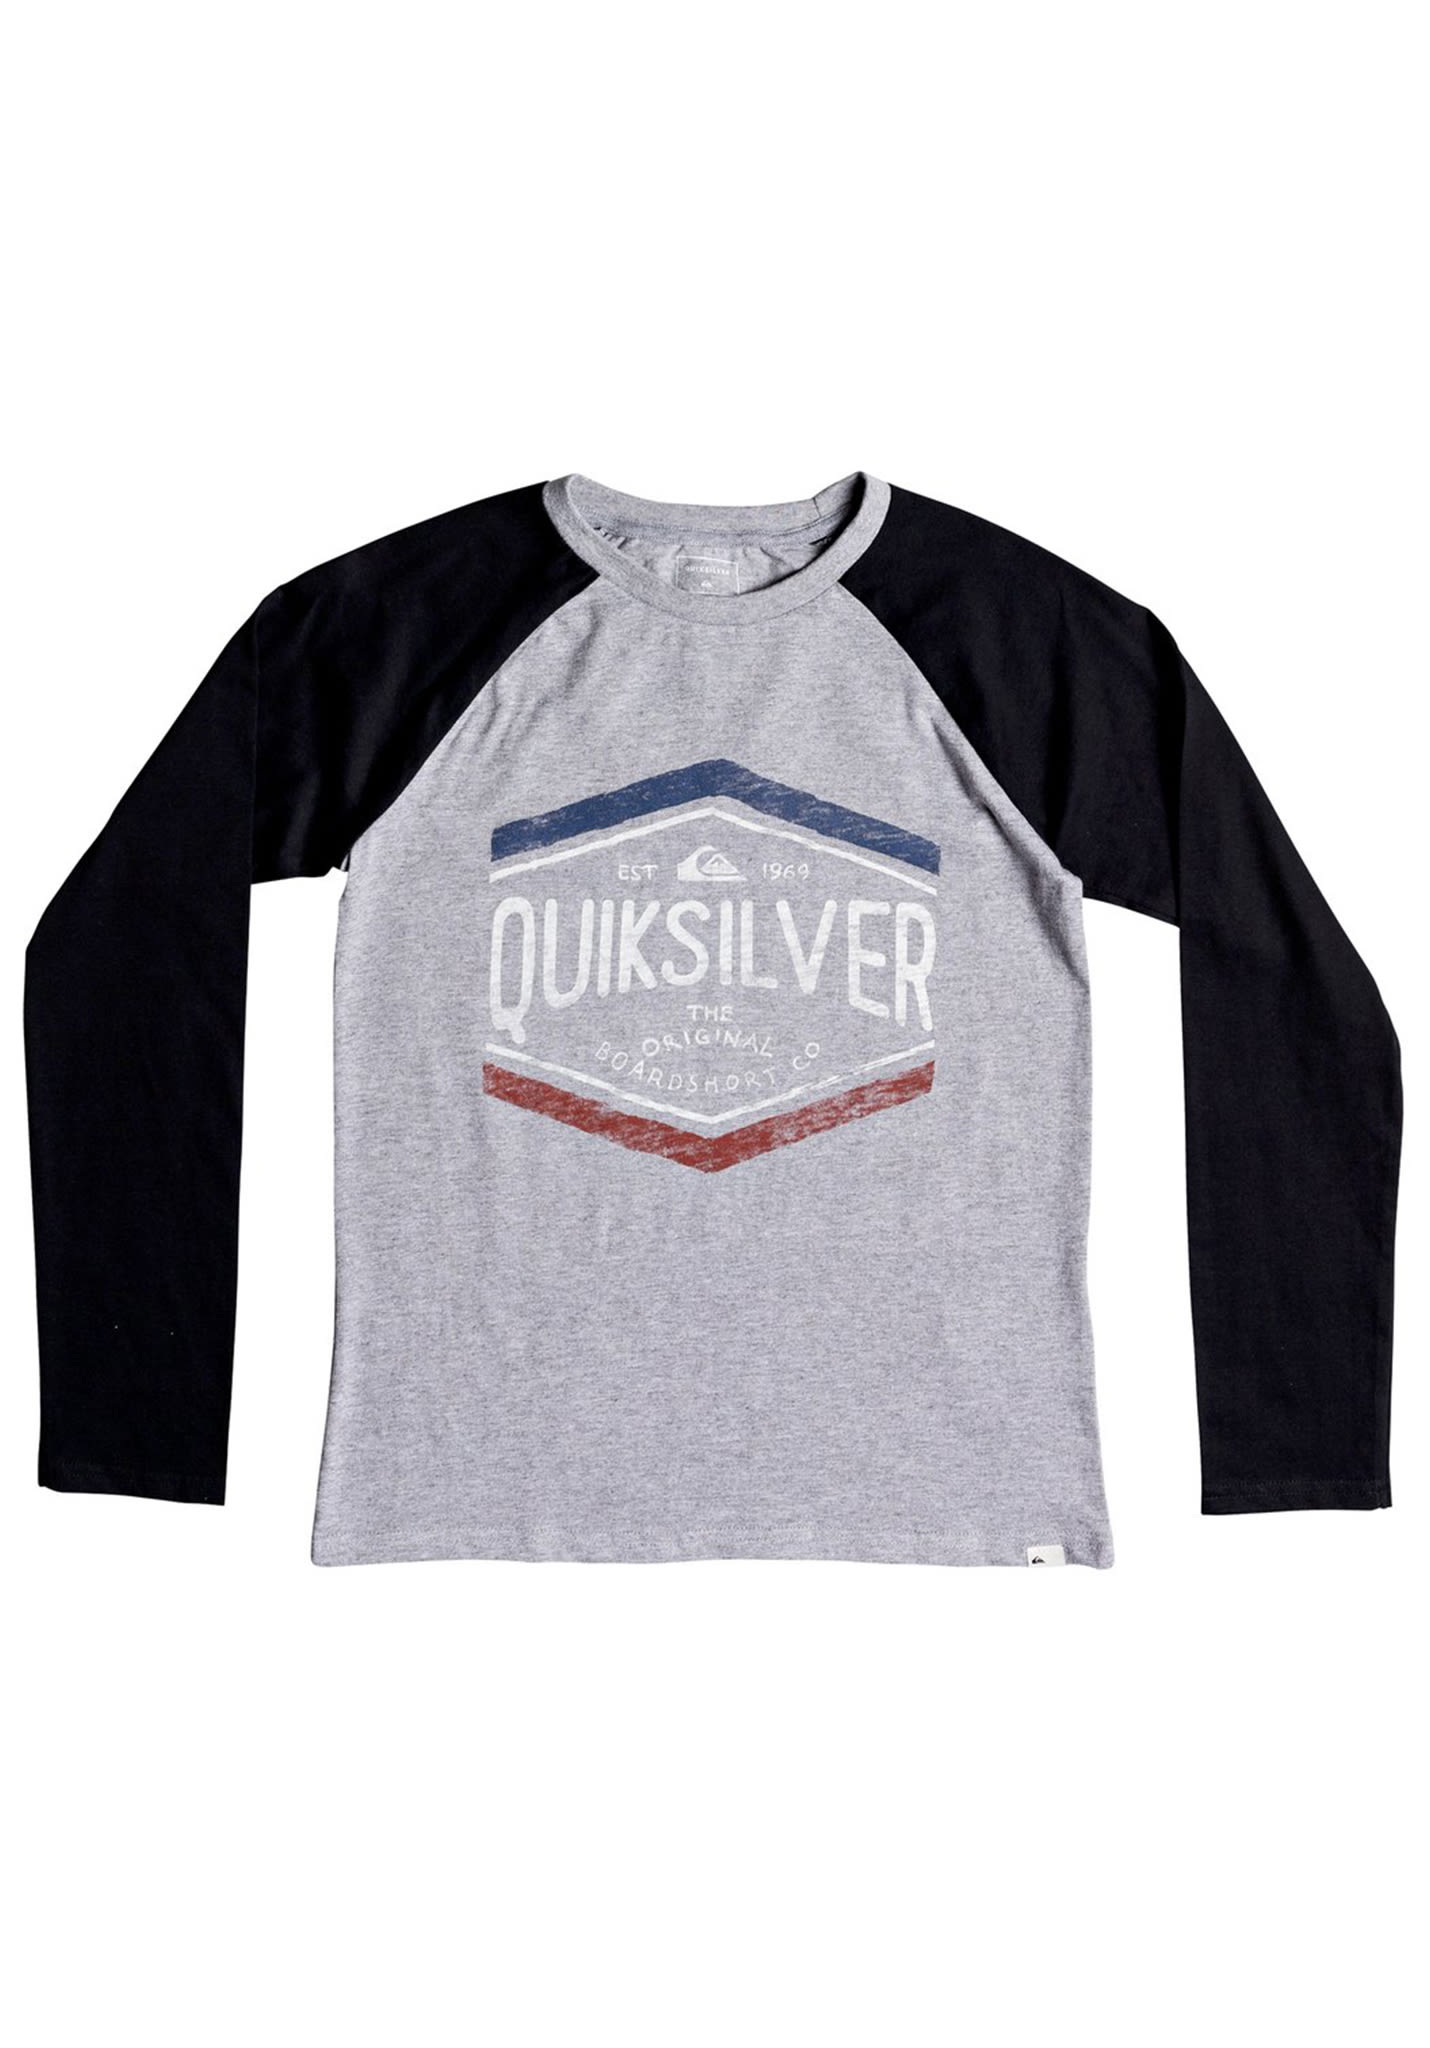 d9dcfd047398 Quiksilver Sketch Memb - Long-sleeved Shirt for Kids Boys - Grey - Planet  Sports